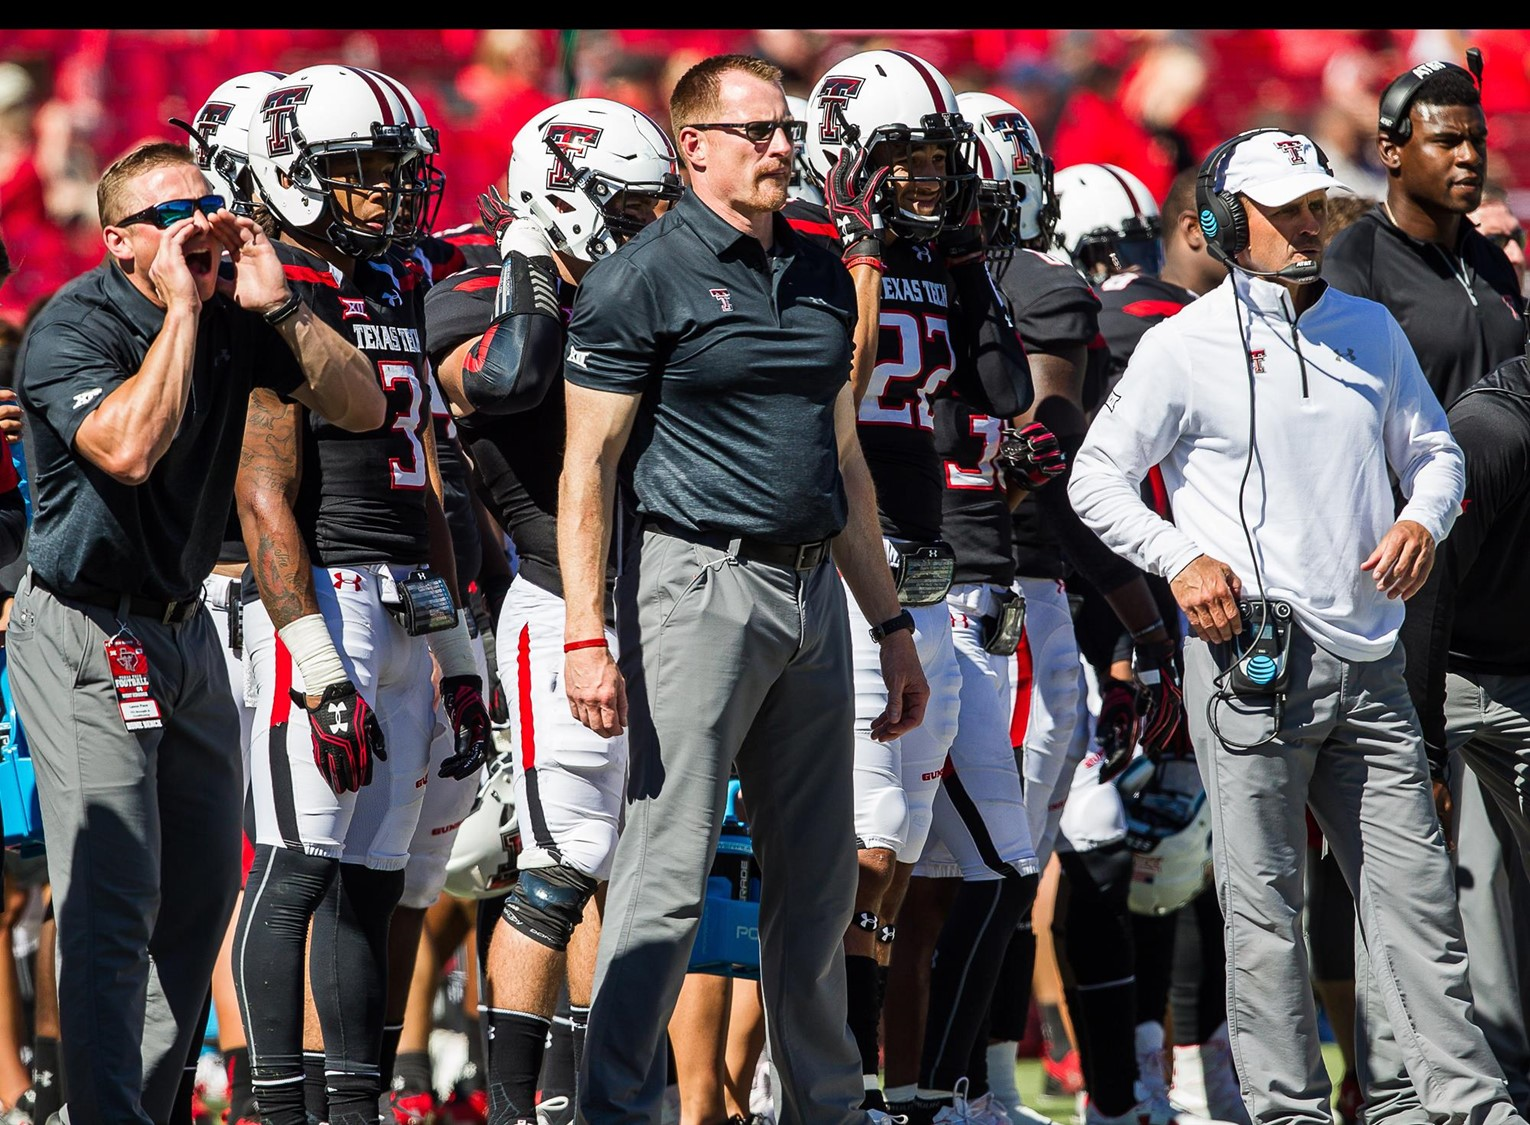 Meet Head of Strength & Conditioning Rusty Whitt - Texas Tech